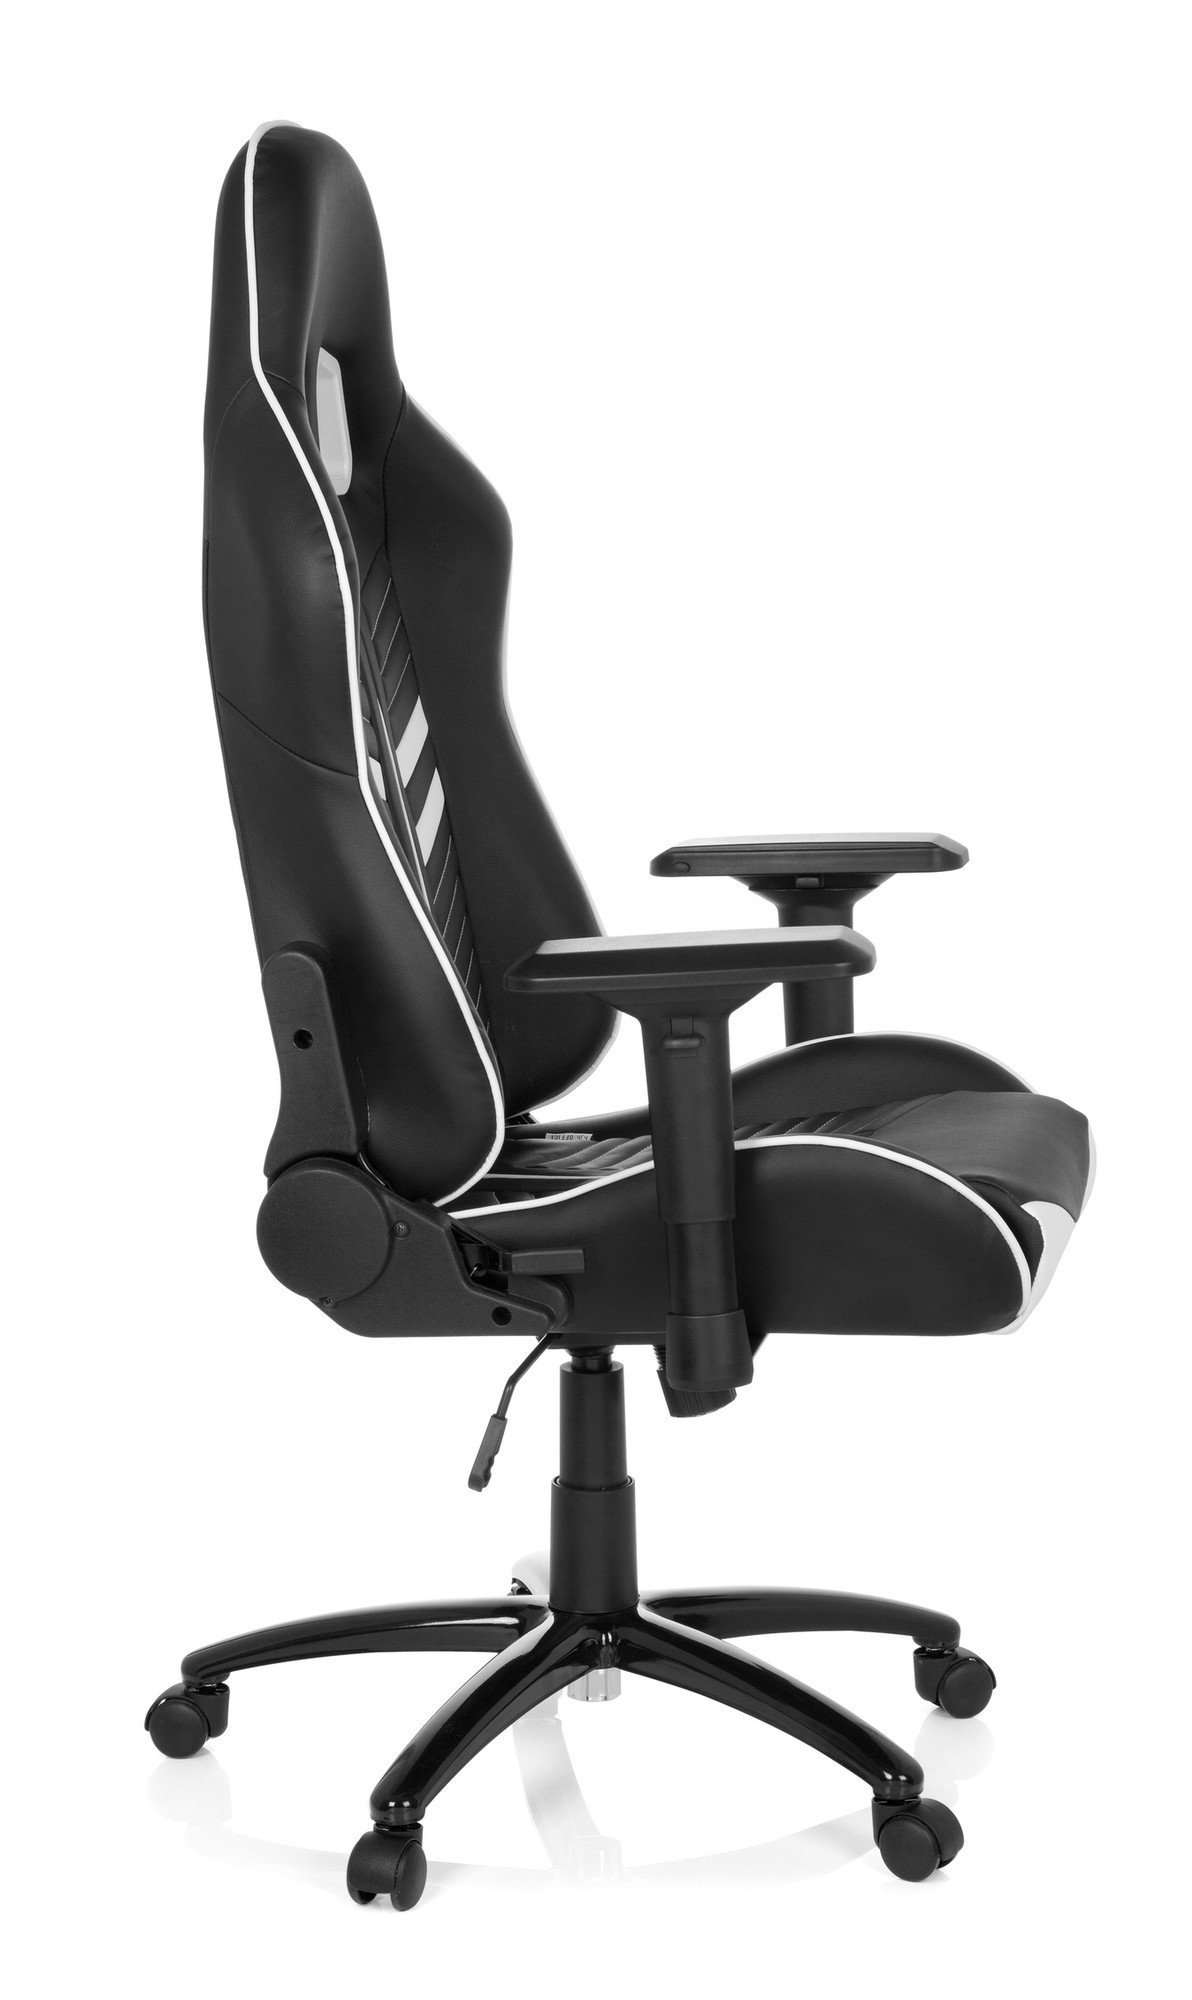 hjh OFFICE 729200 Silla Gaming League Pro Piel sintética Negro/Blanco Silla Escritorio